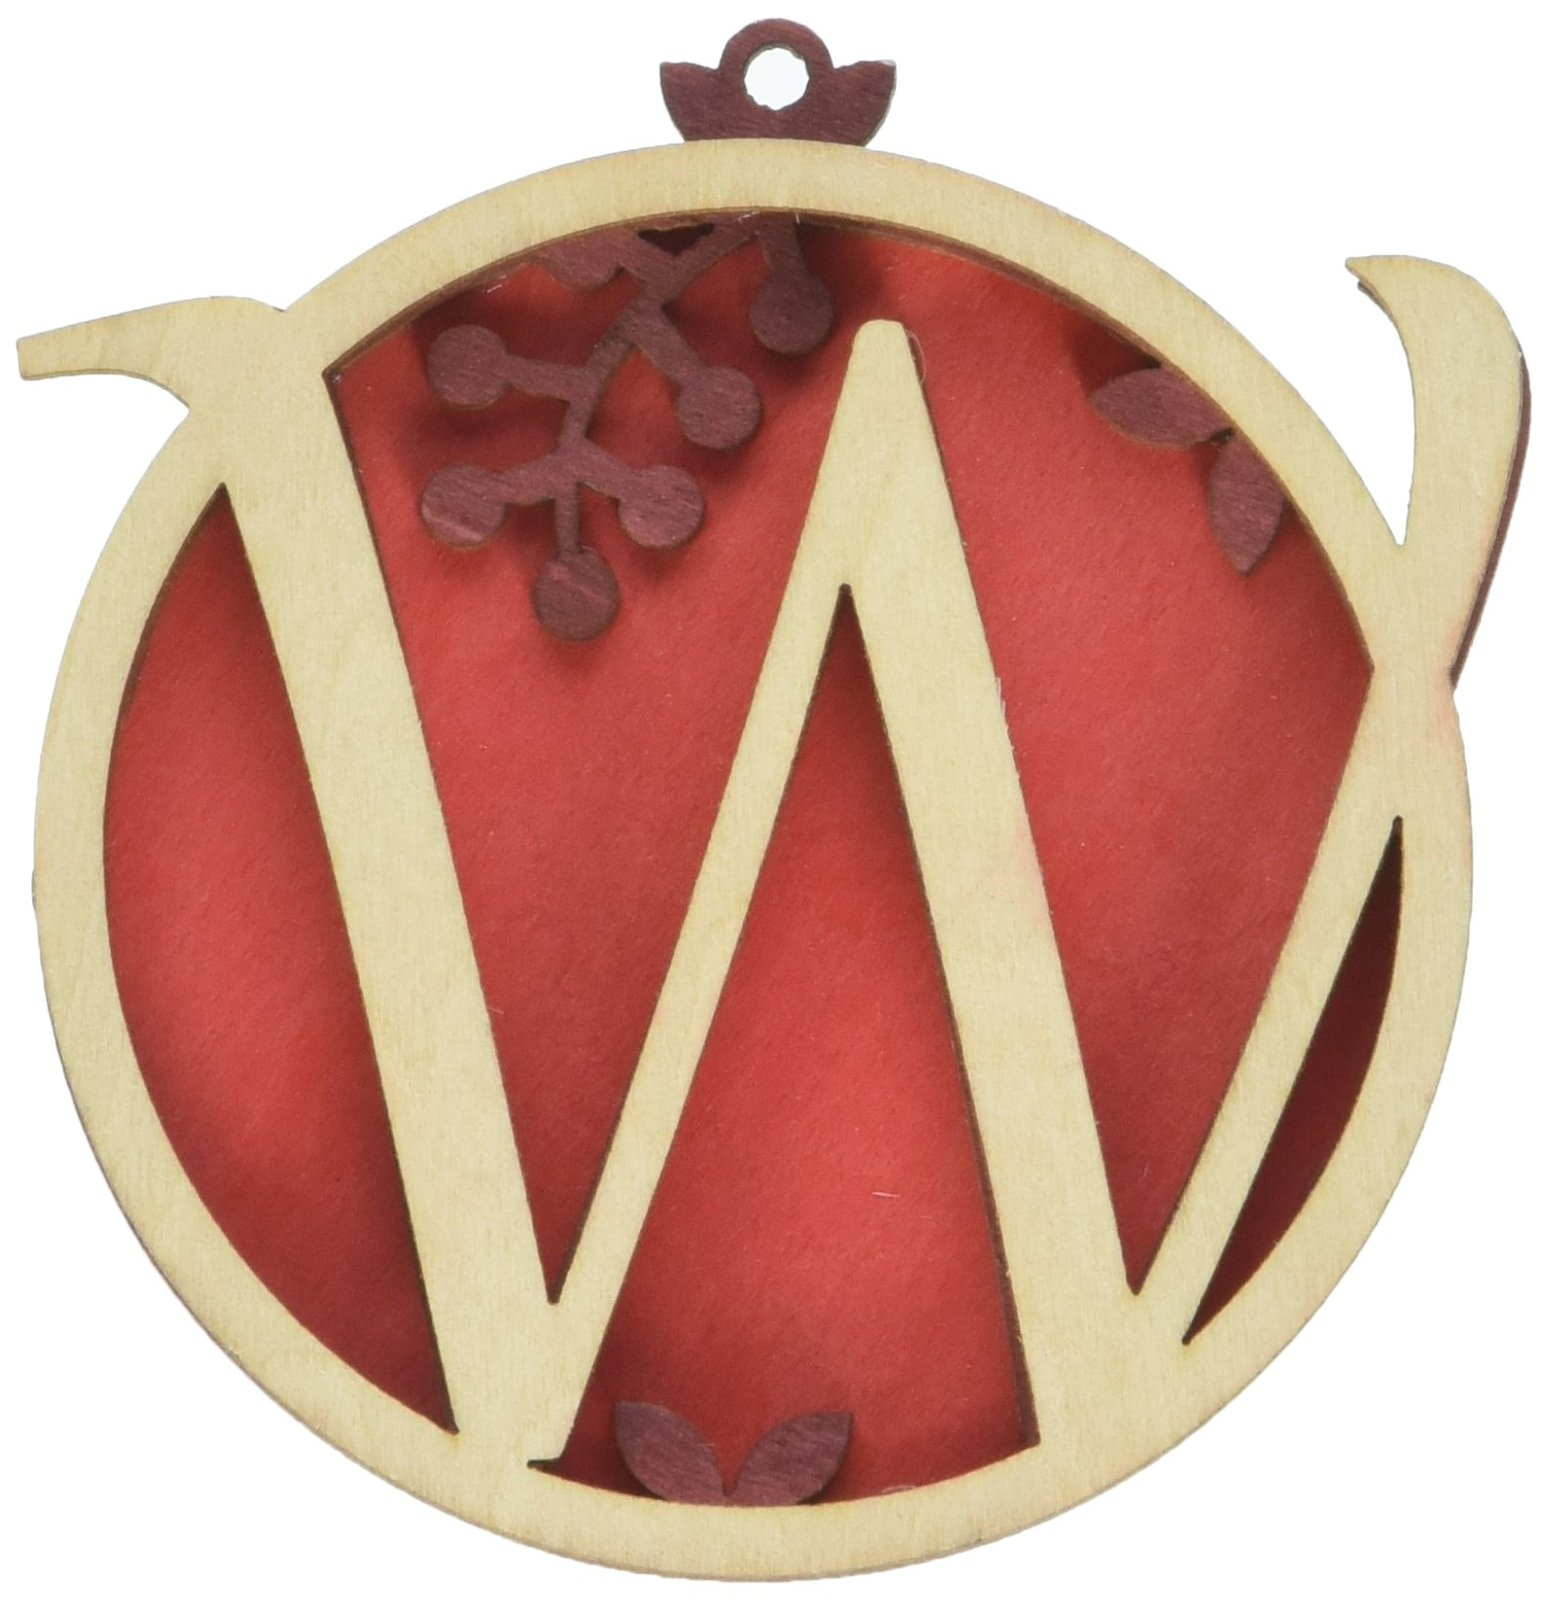 Enesco Flourish Letter W Monogramed Ornament, 3.2-Inch